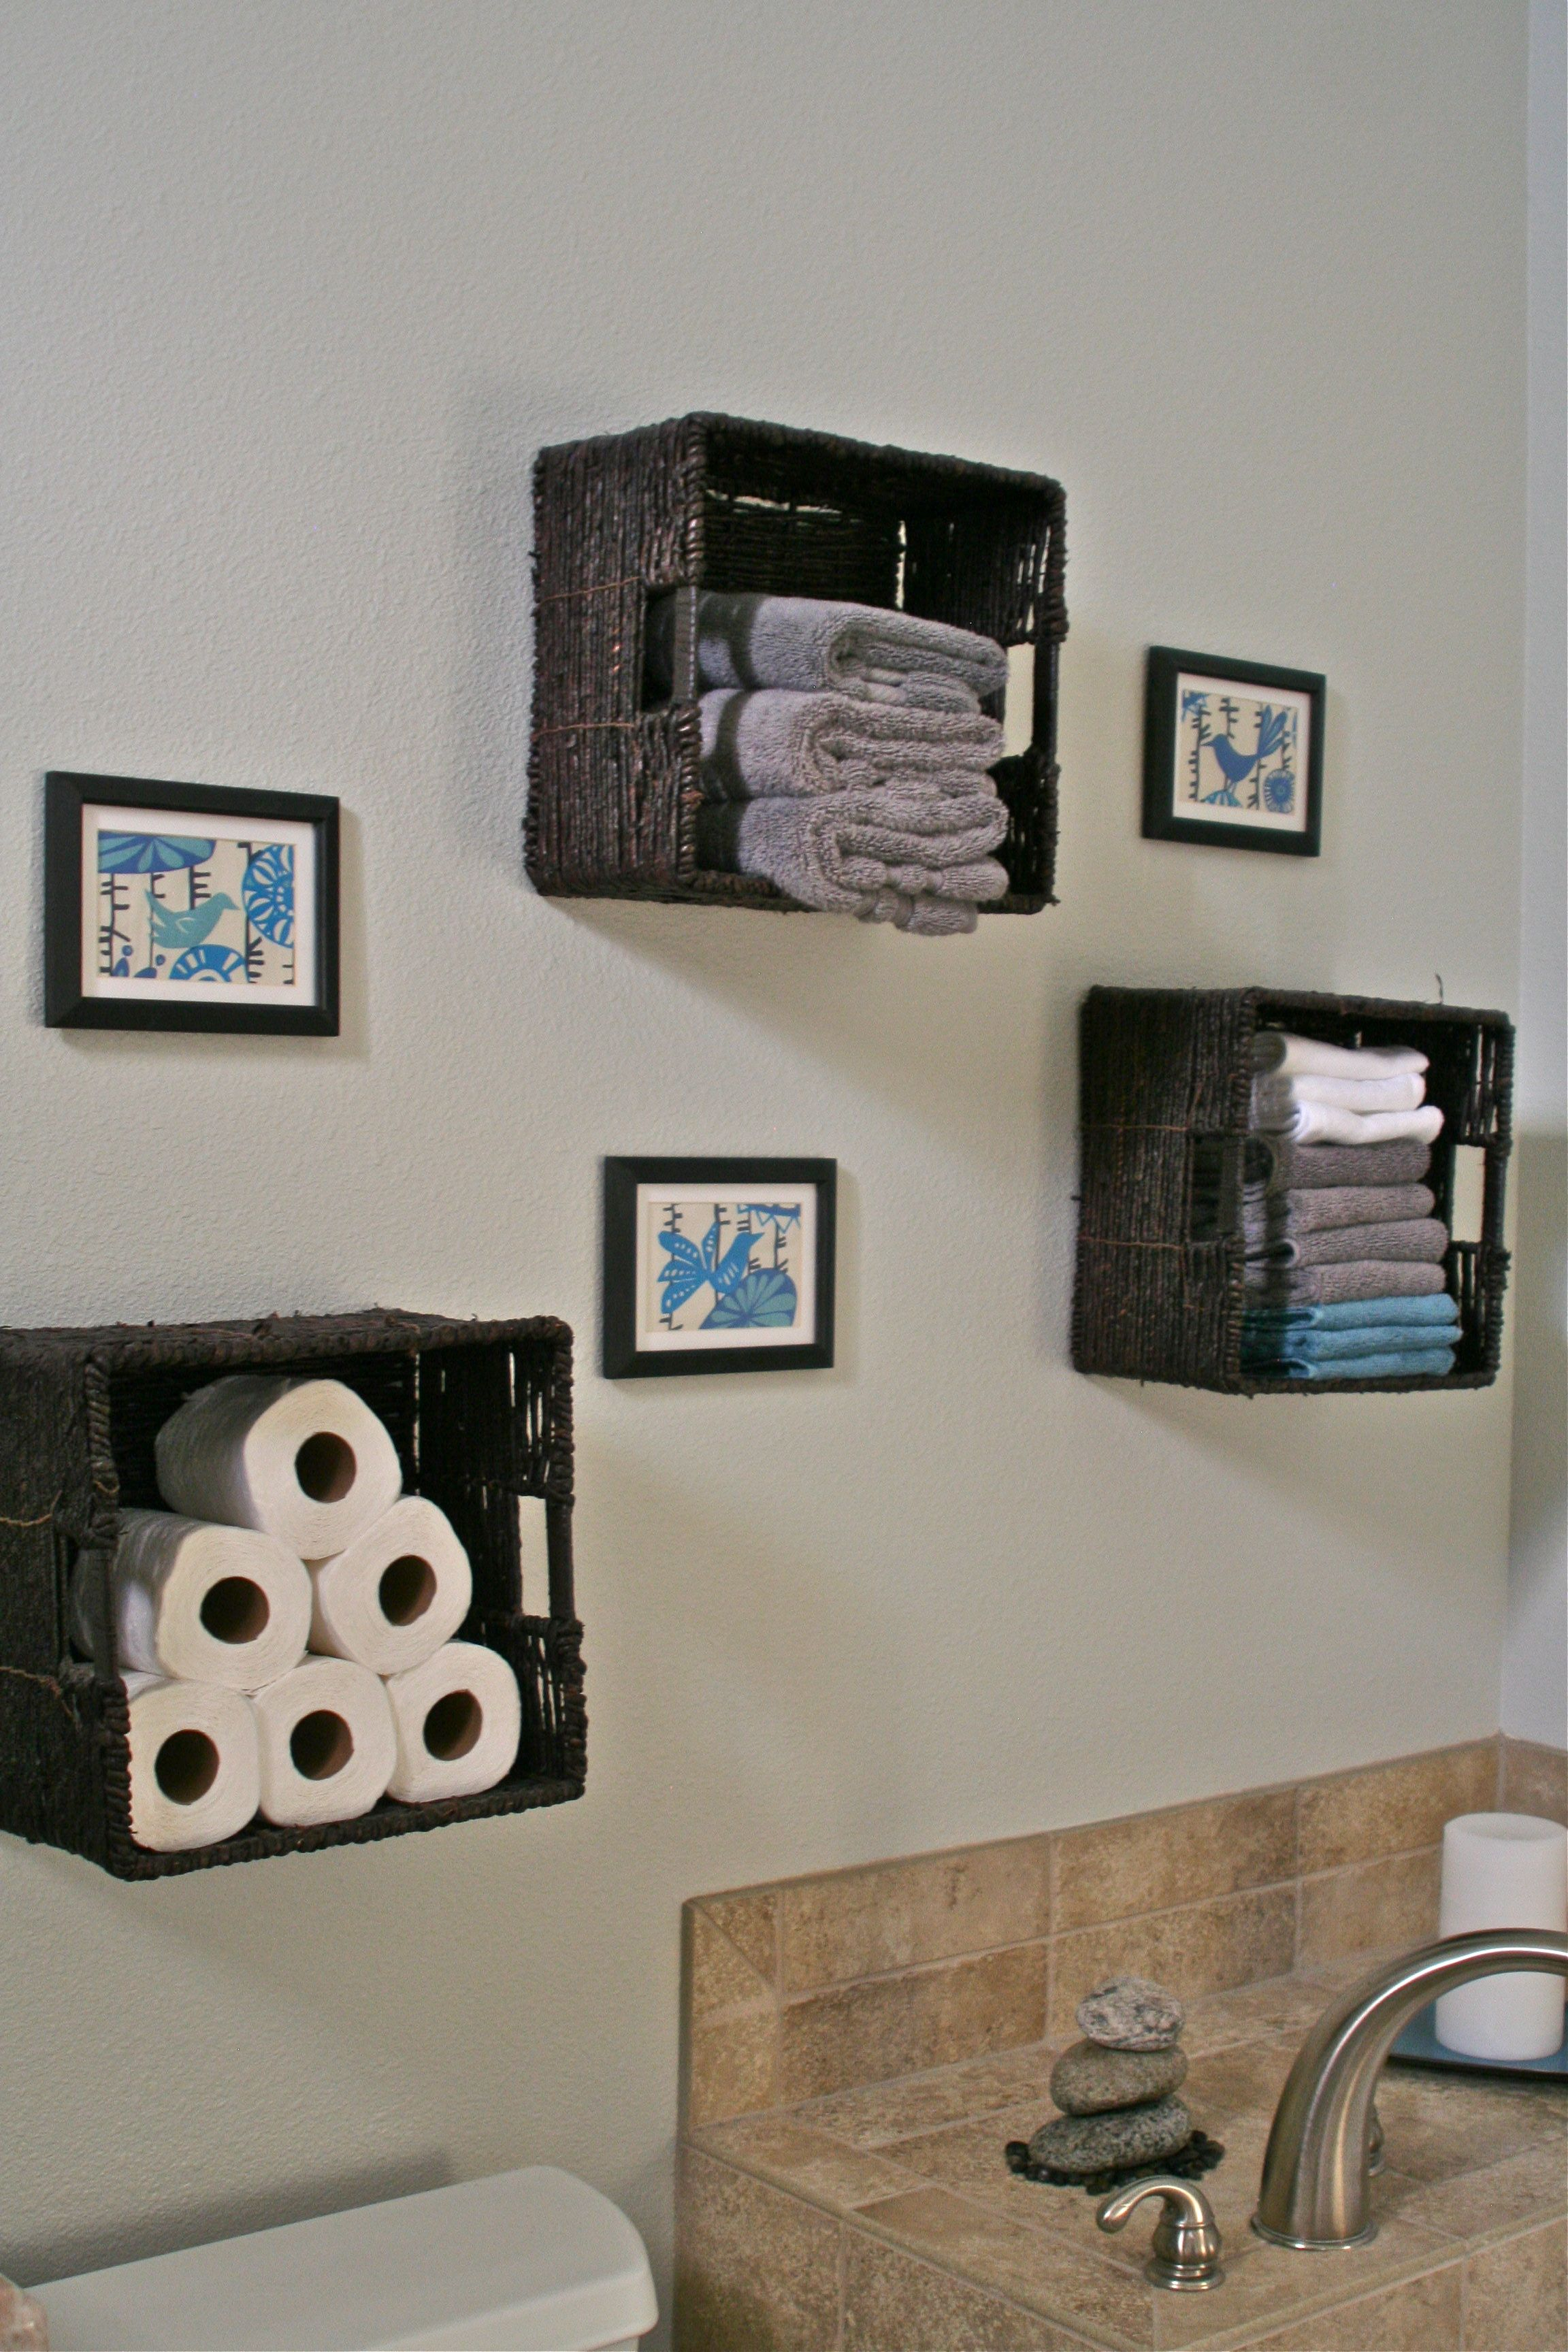 Bathroom Storage Baskets For Towels Toilet Paper Etc Love pertaining to size 2304 X 3456